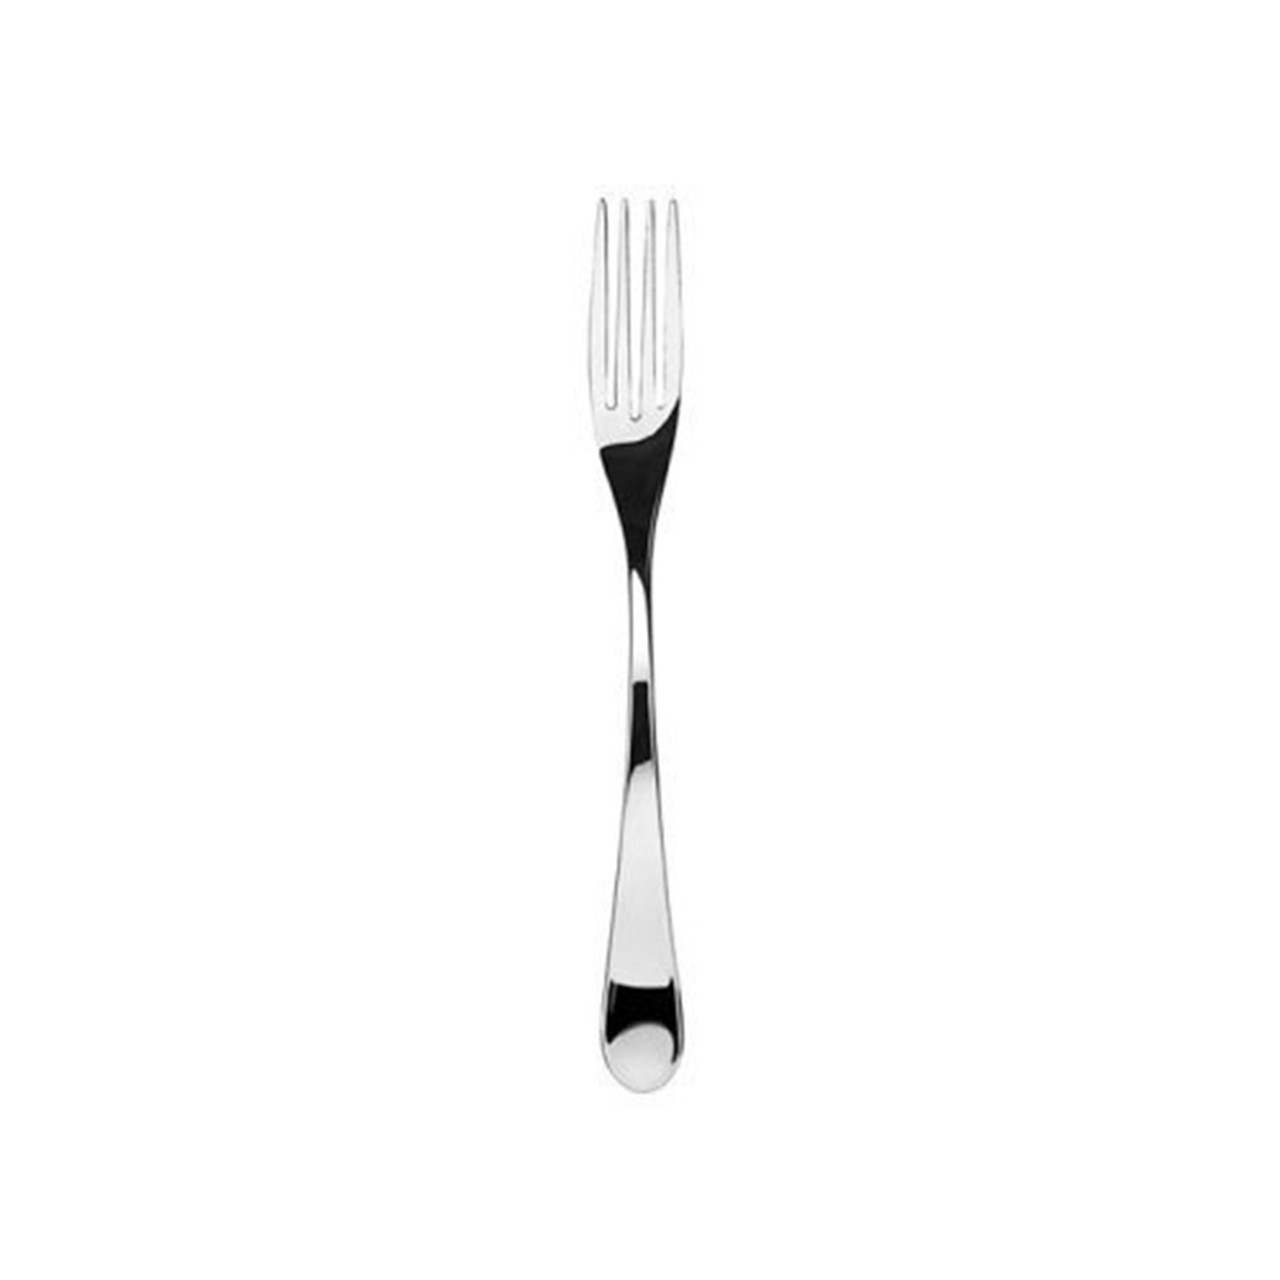 Windermere - Fish Dinner Fork 8 pc set